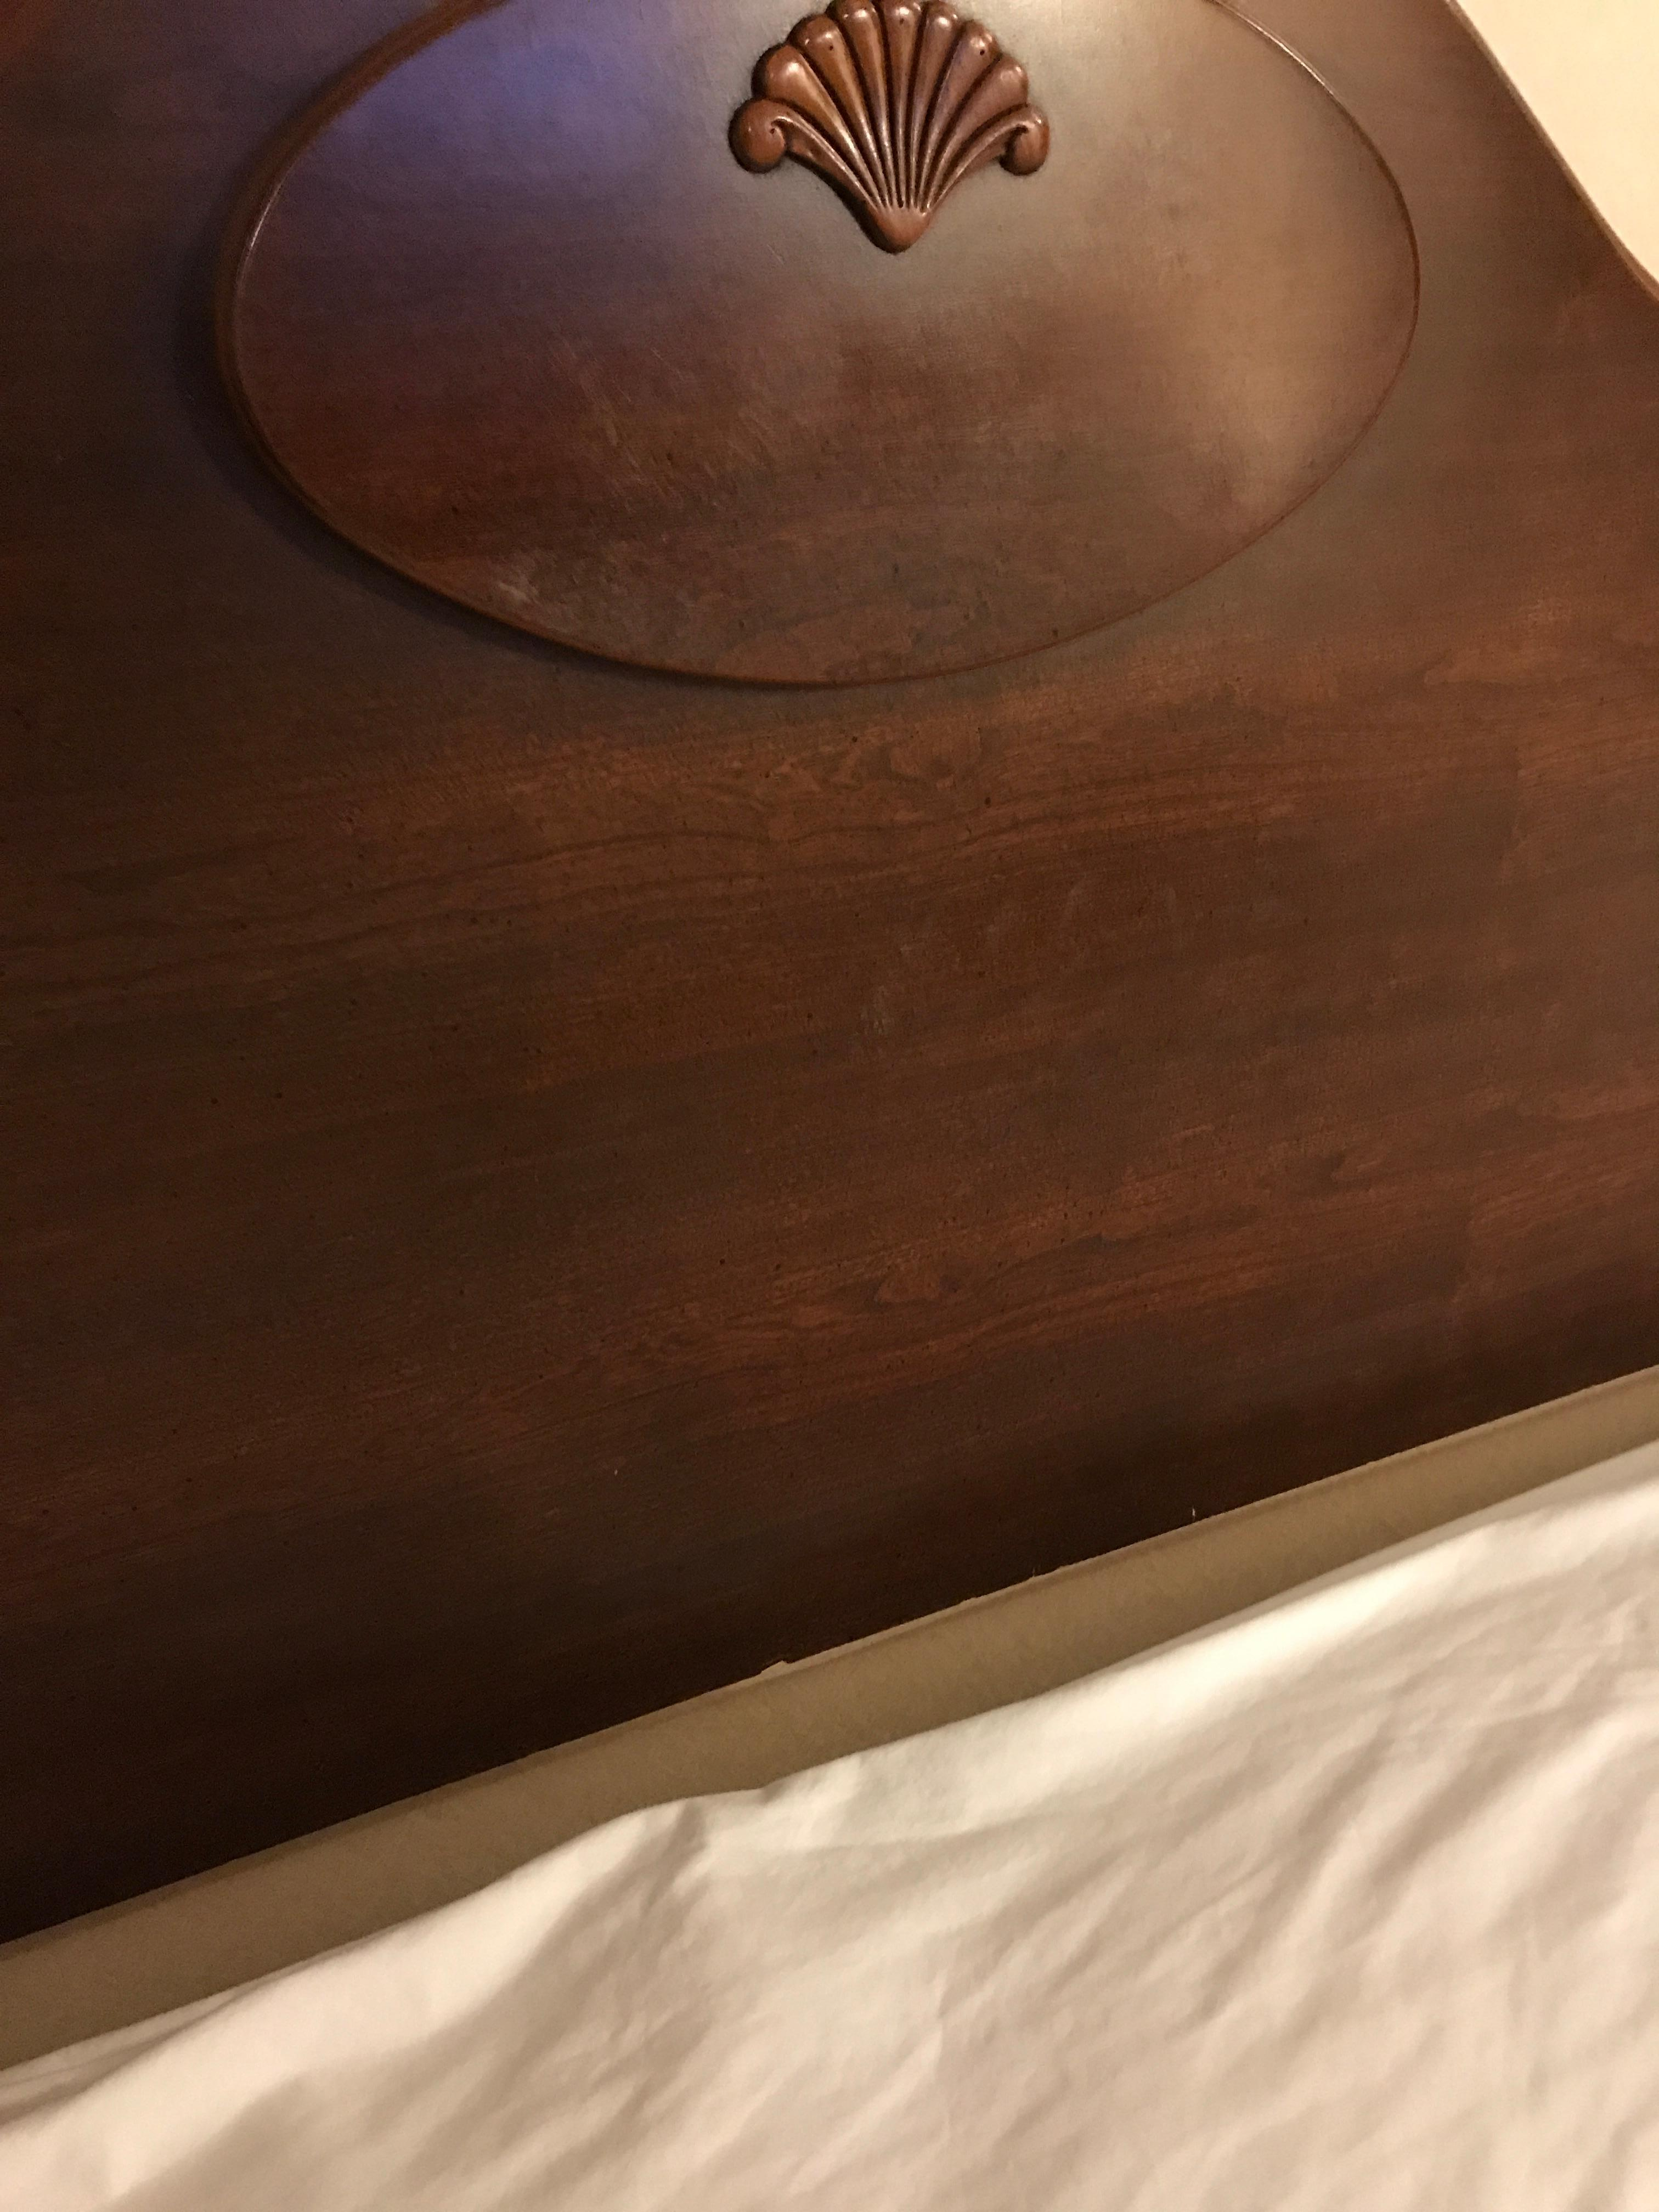 Hand prints were on the head board